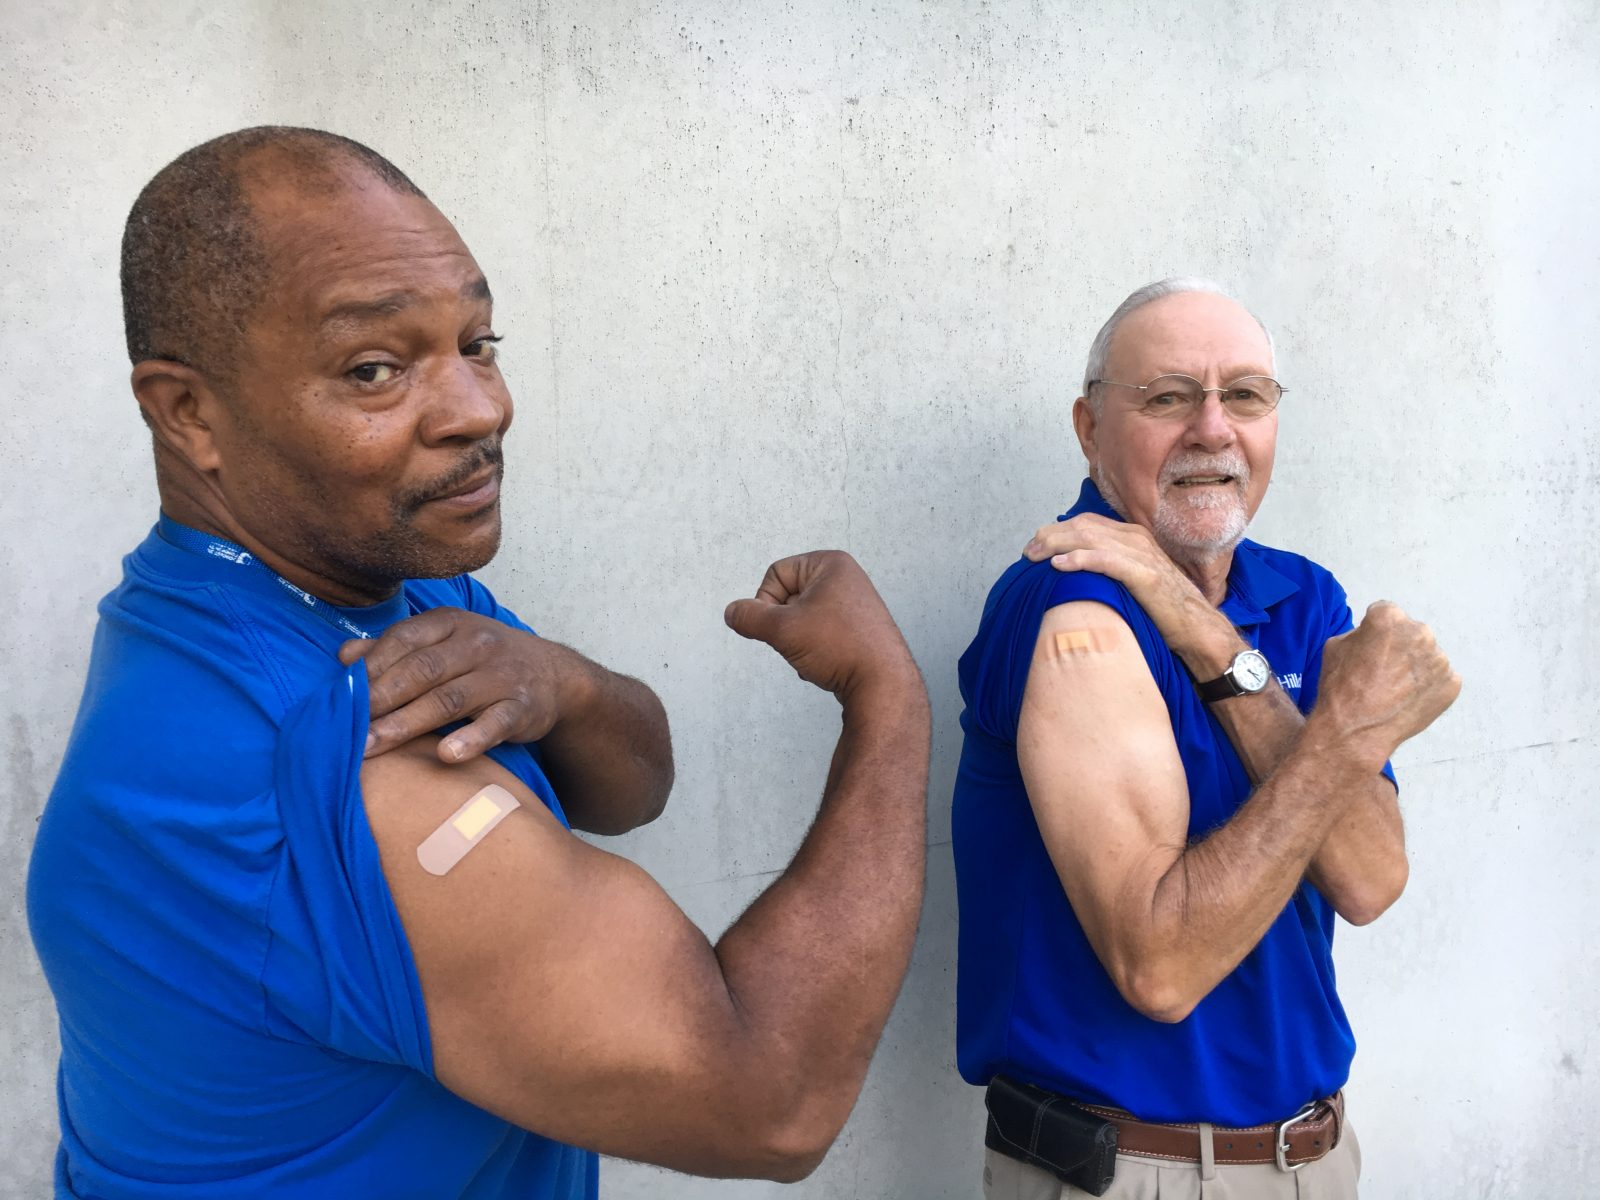 Employees flexing their arms